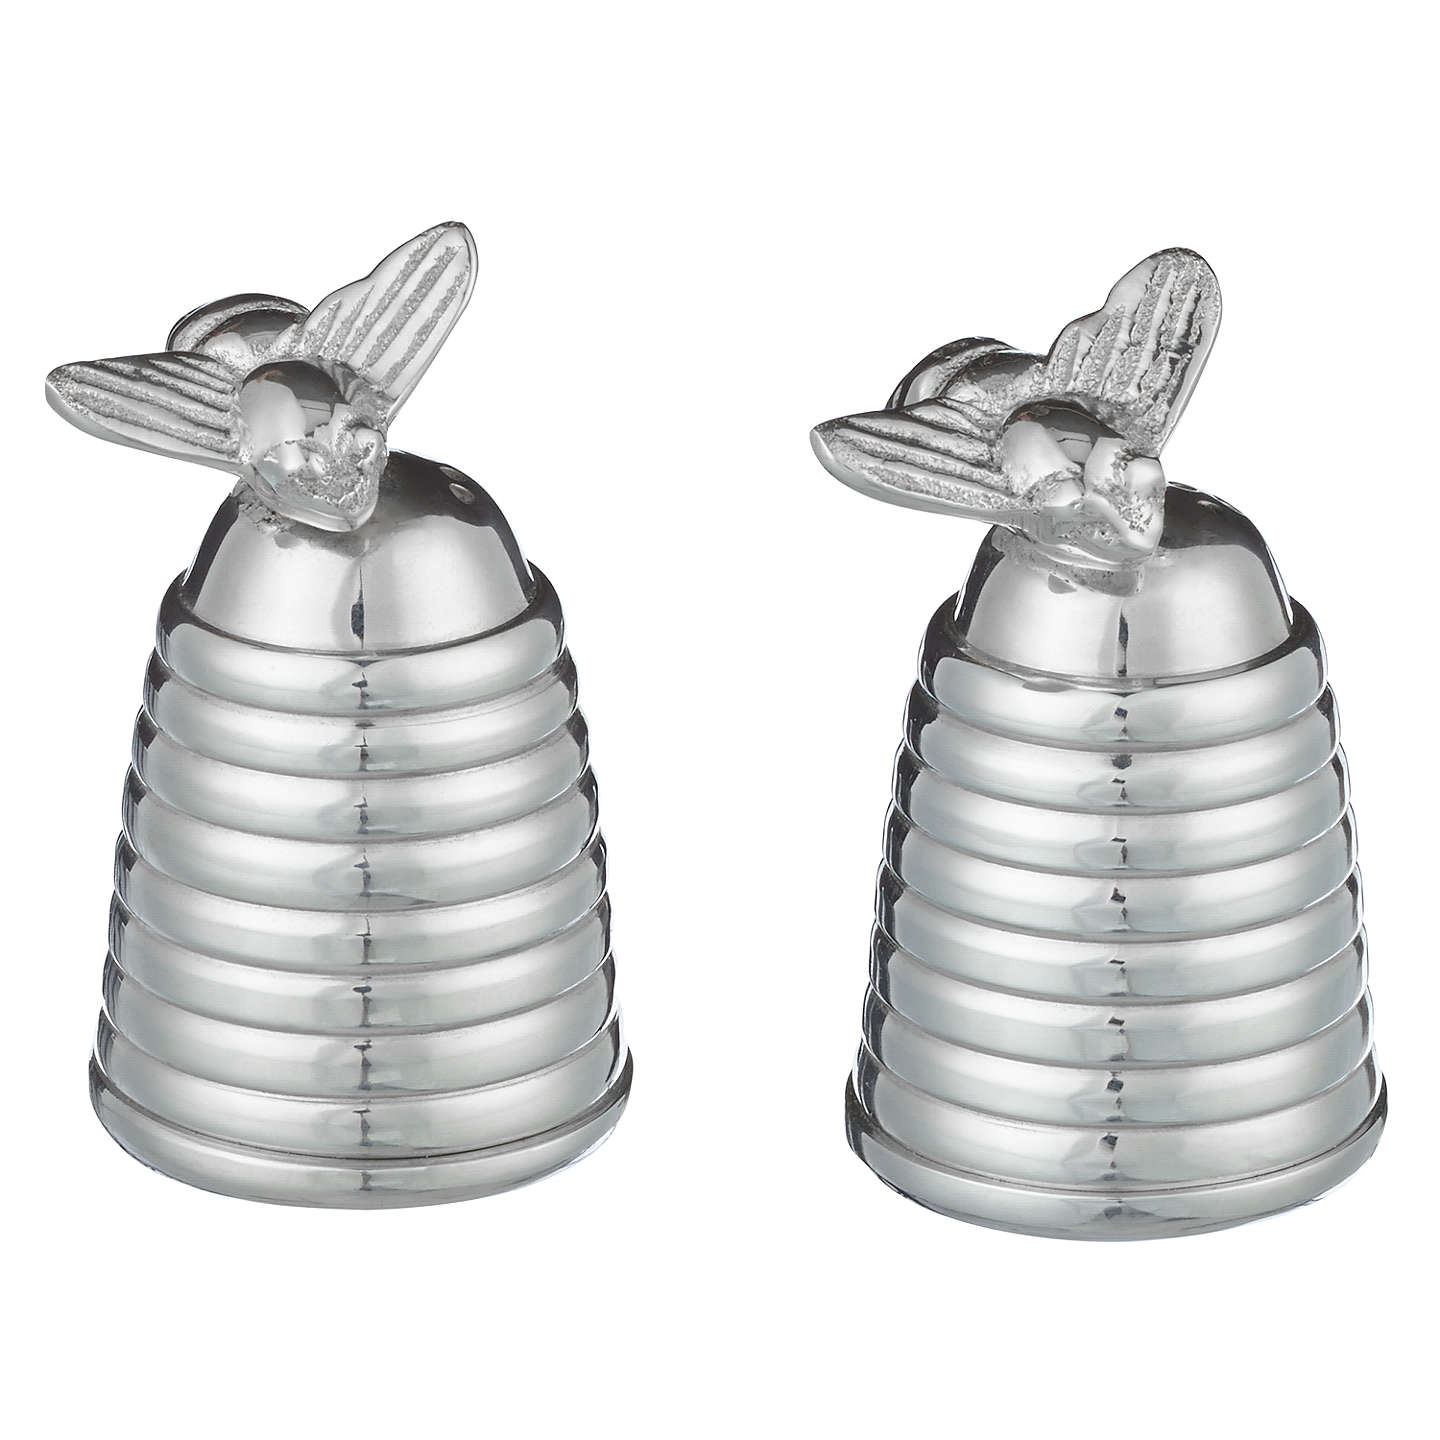 BuyCulinary Concepts Silver Plated Honey Bee Hive Salt & Pepper Cruet Set Online at johnlewis.com